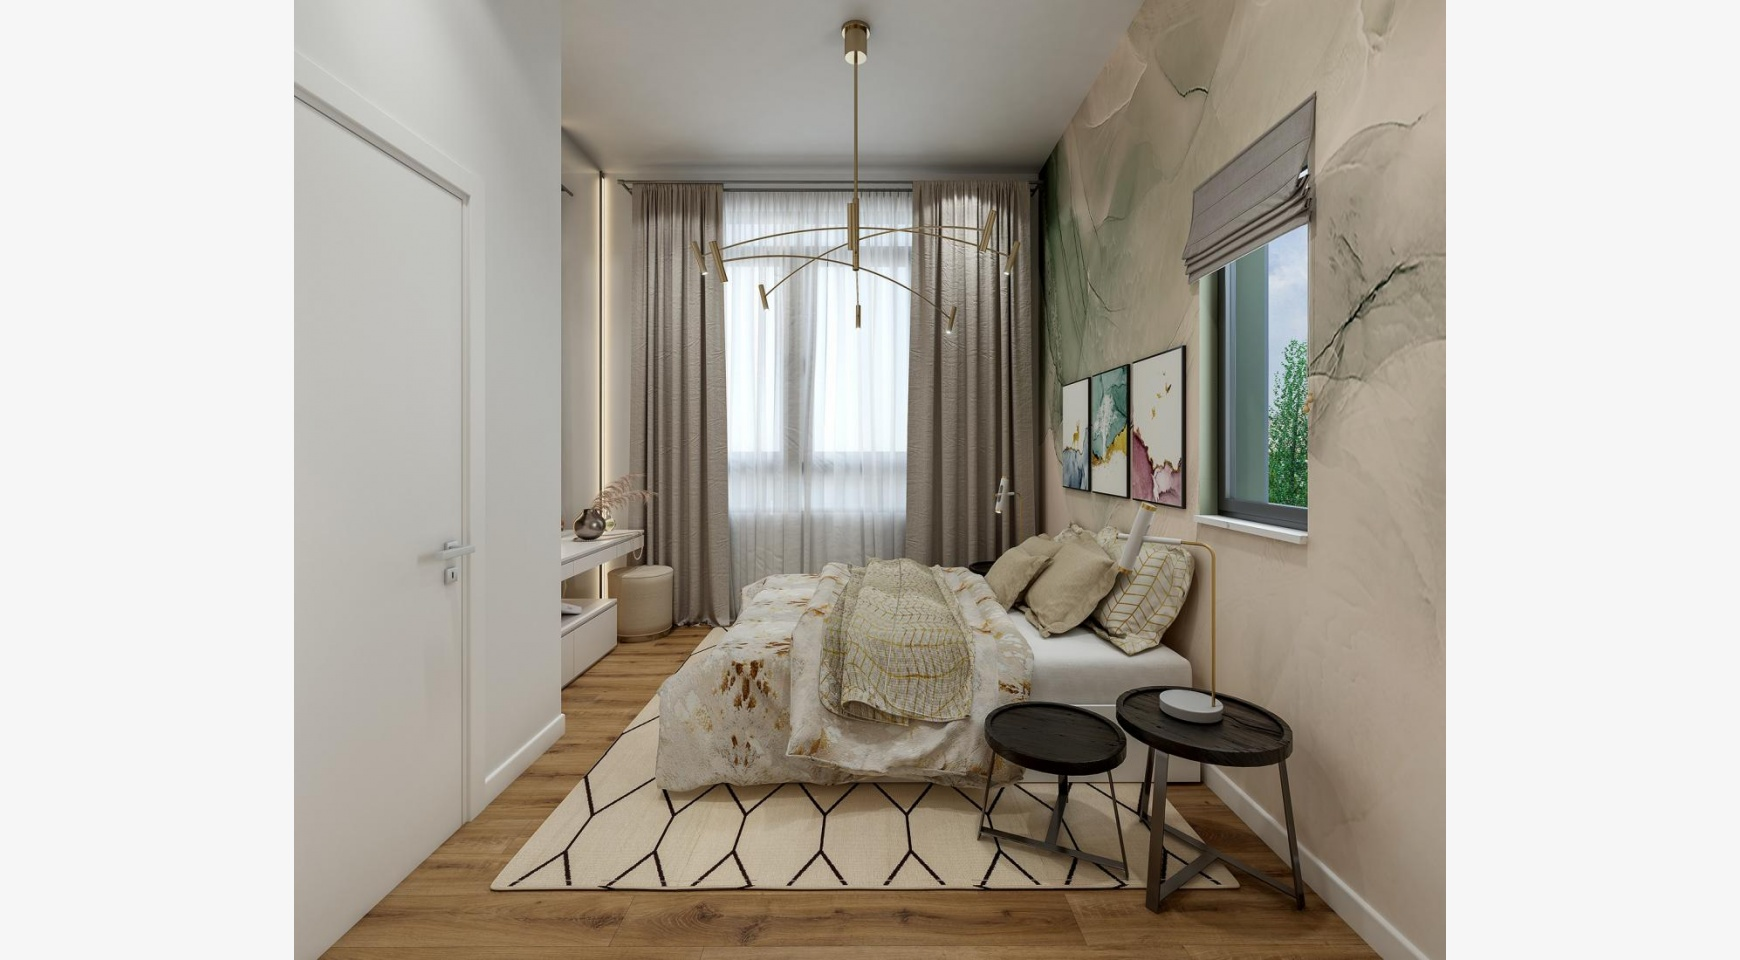 Urban City Residences, Block B. New Spacious 2 Bedroom Apartment 302 in the City Centre - 8